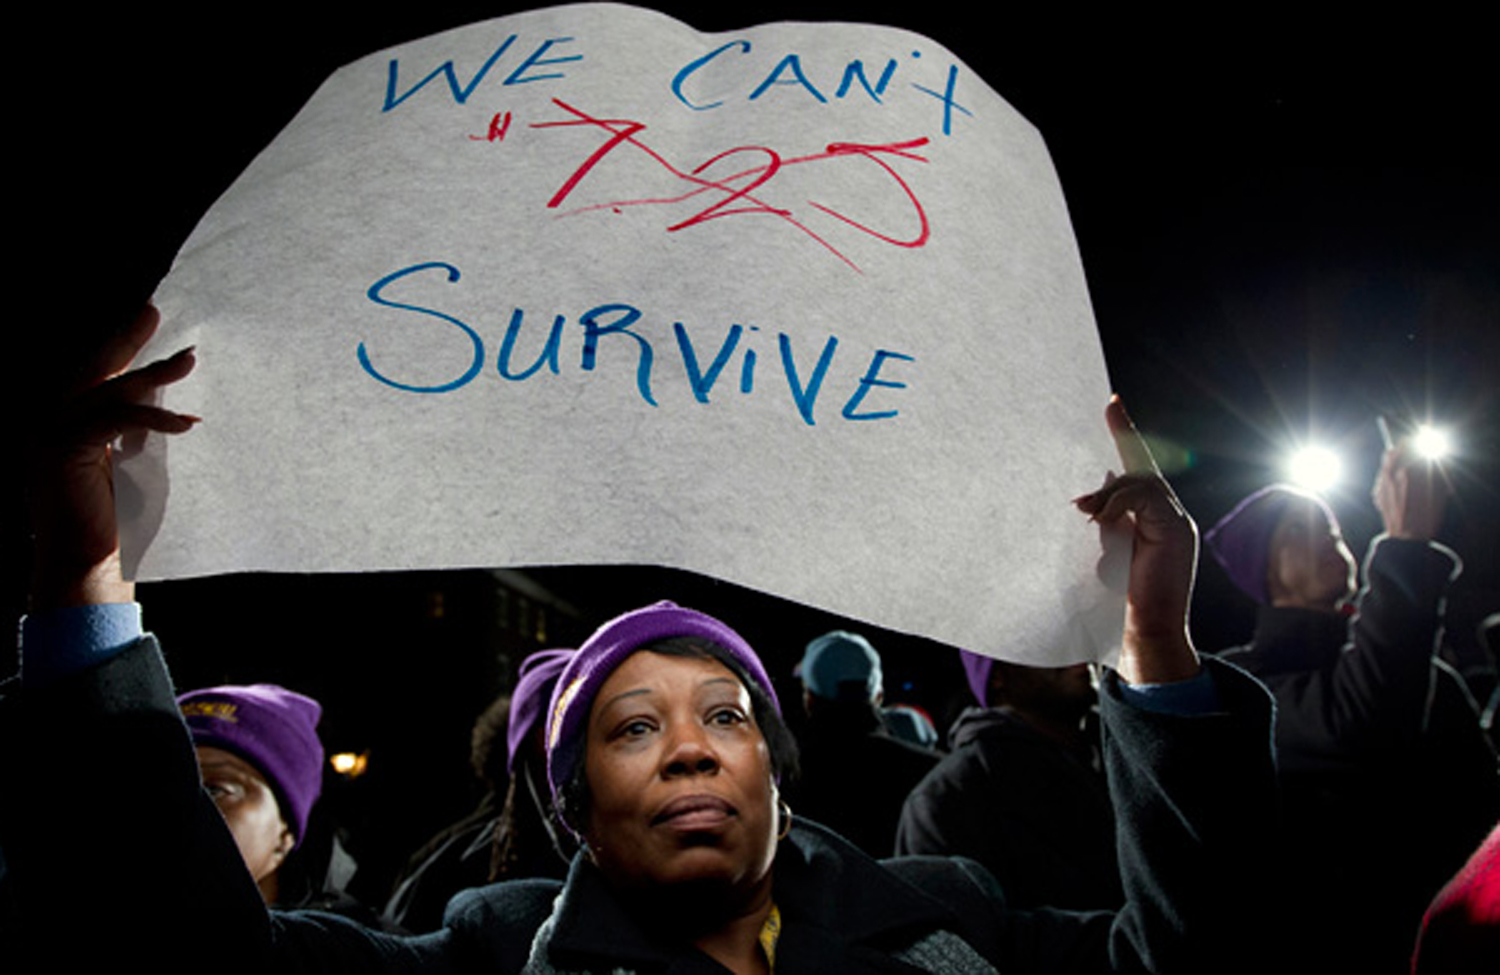 pDarlene-Handy-of-Baltimore-holds-up-a-sign-during-a-rally-to-support-raising-the-minimum-wage-in-Maryland.-AP-PhotoJose-Luis-Magana-nbspp